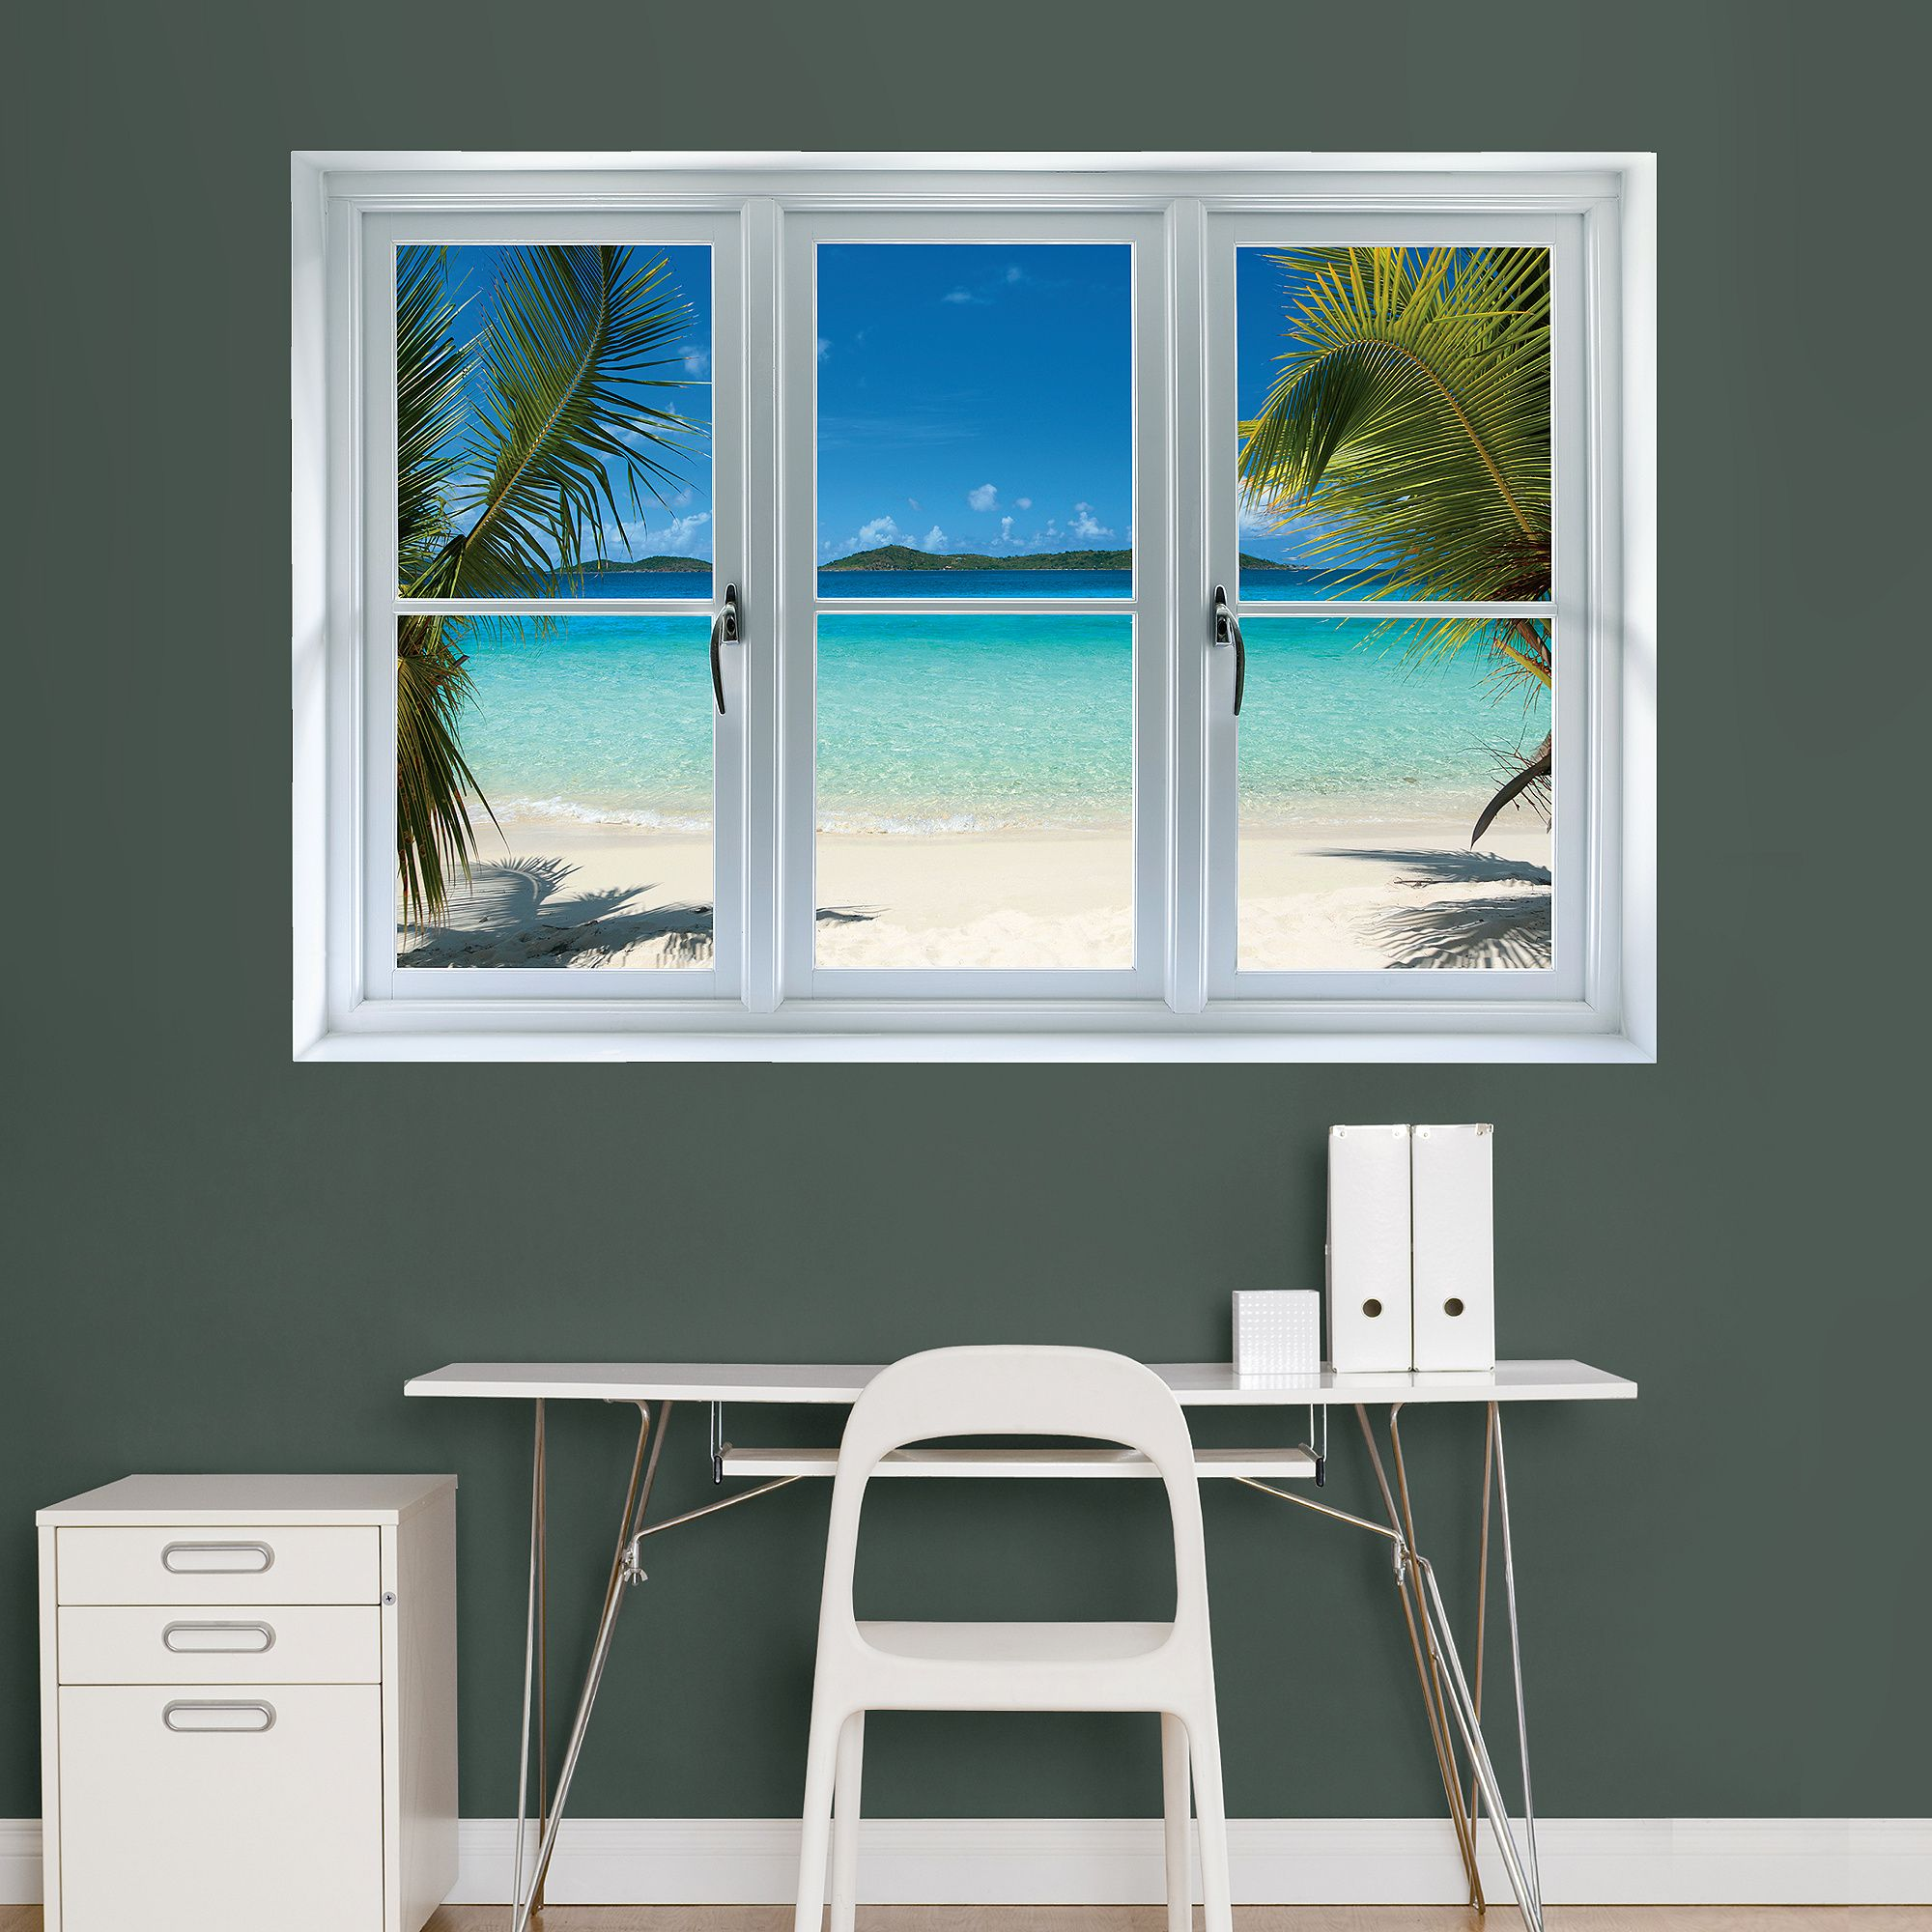 Virgin Islands Beach Instant Window Think I Might Put This